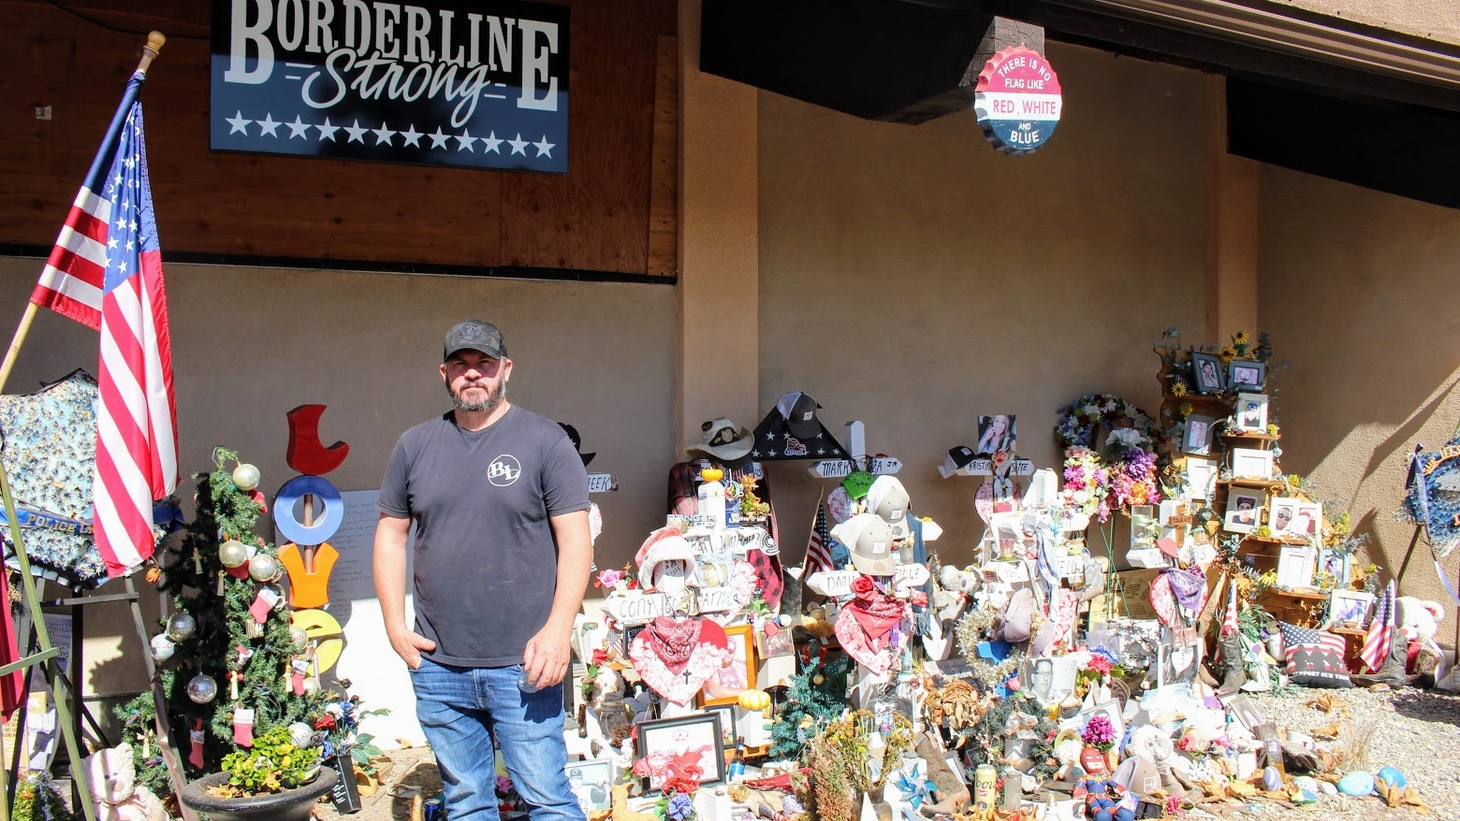 Borderline owner Brian Hynes stands in front of a memorial outside Borderline Bar in Thousand Oaks.